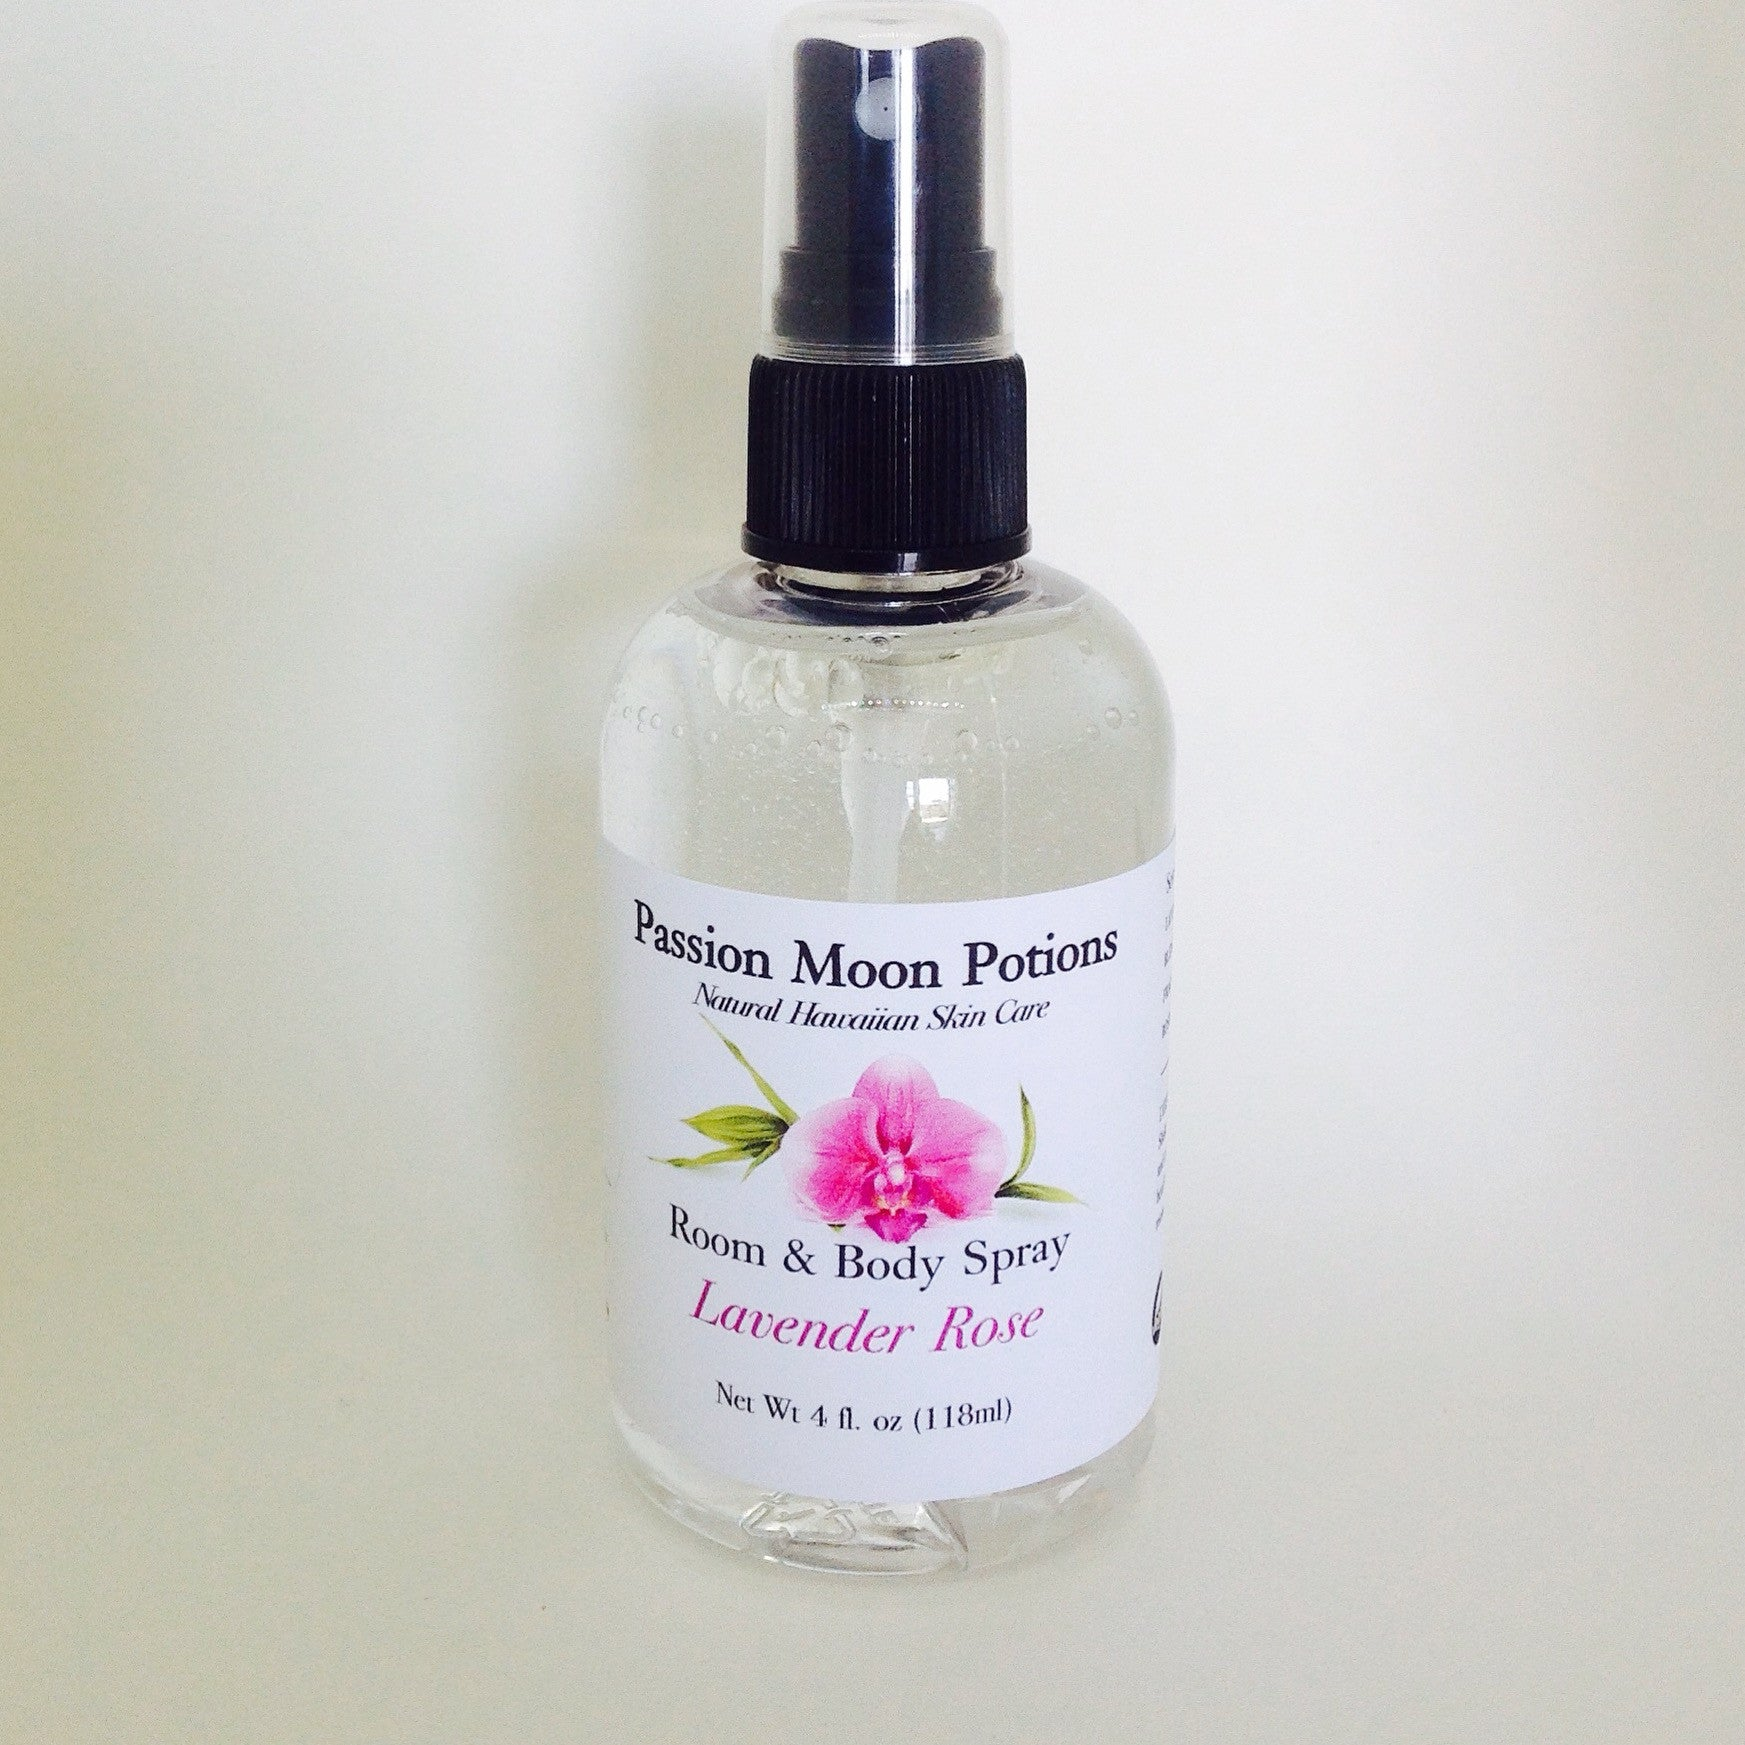 Room and Body Sprays - Passion Moon Potions - 5